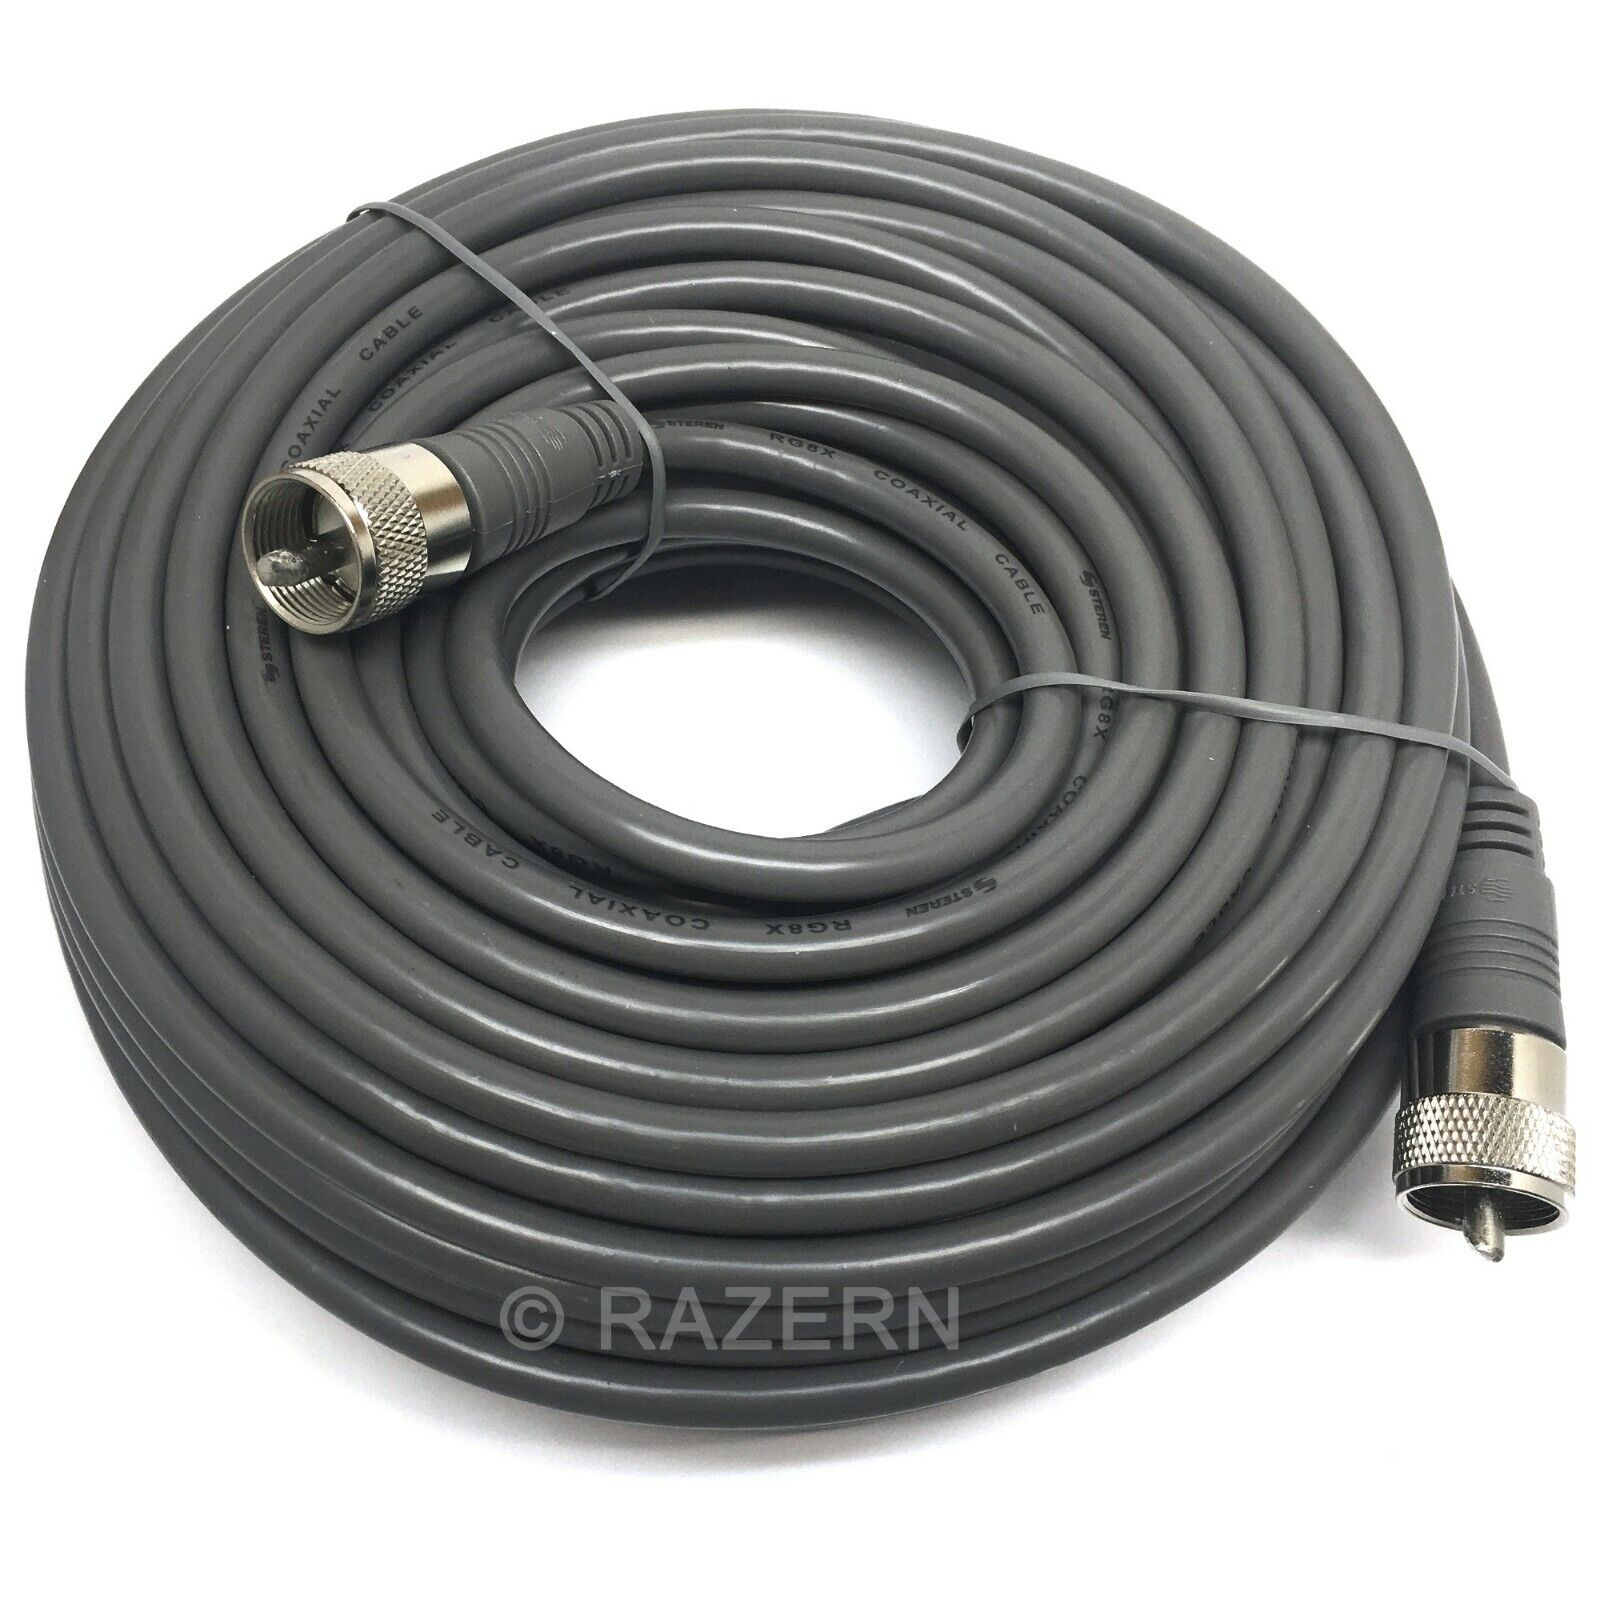 Steren 75 ft Gray RG8X Mini-8 Coax Coaxial PL259 UHF Ham CB Radio Antenna Cable. Available Now for 42.95